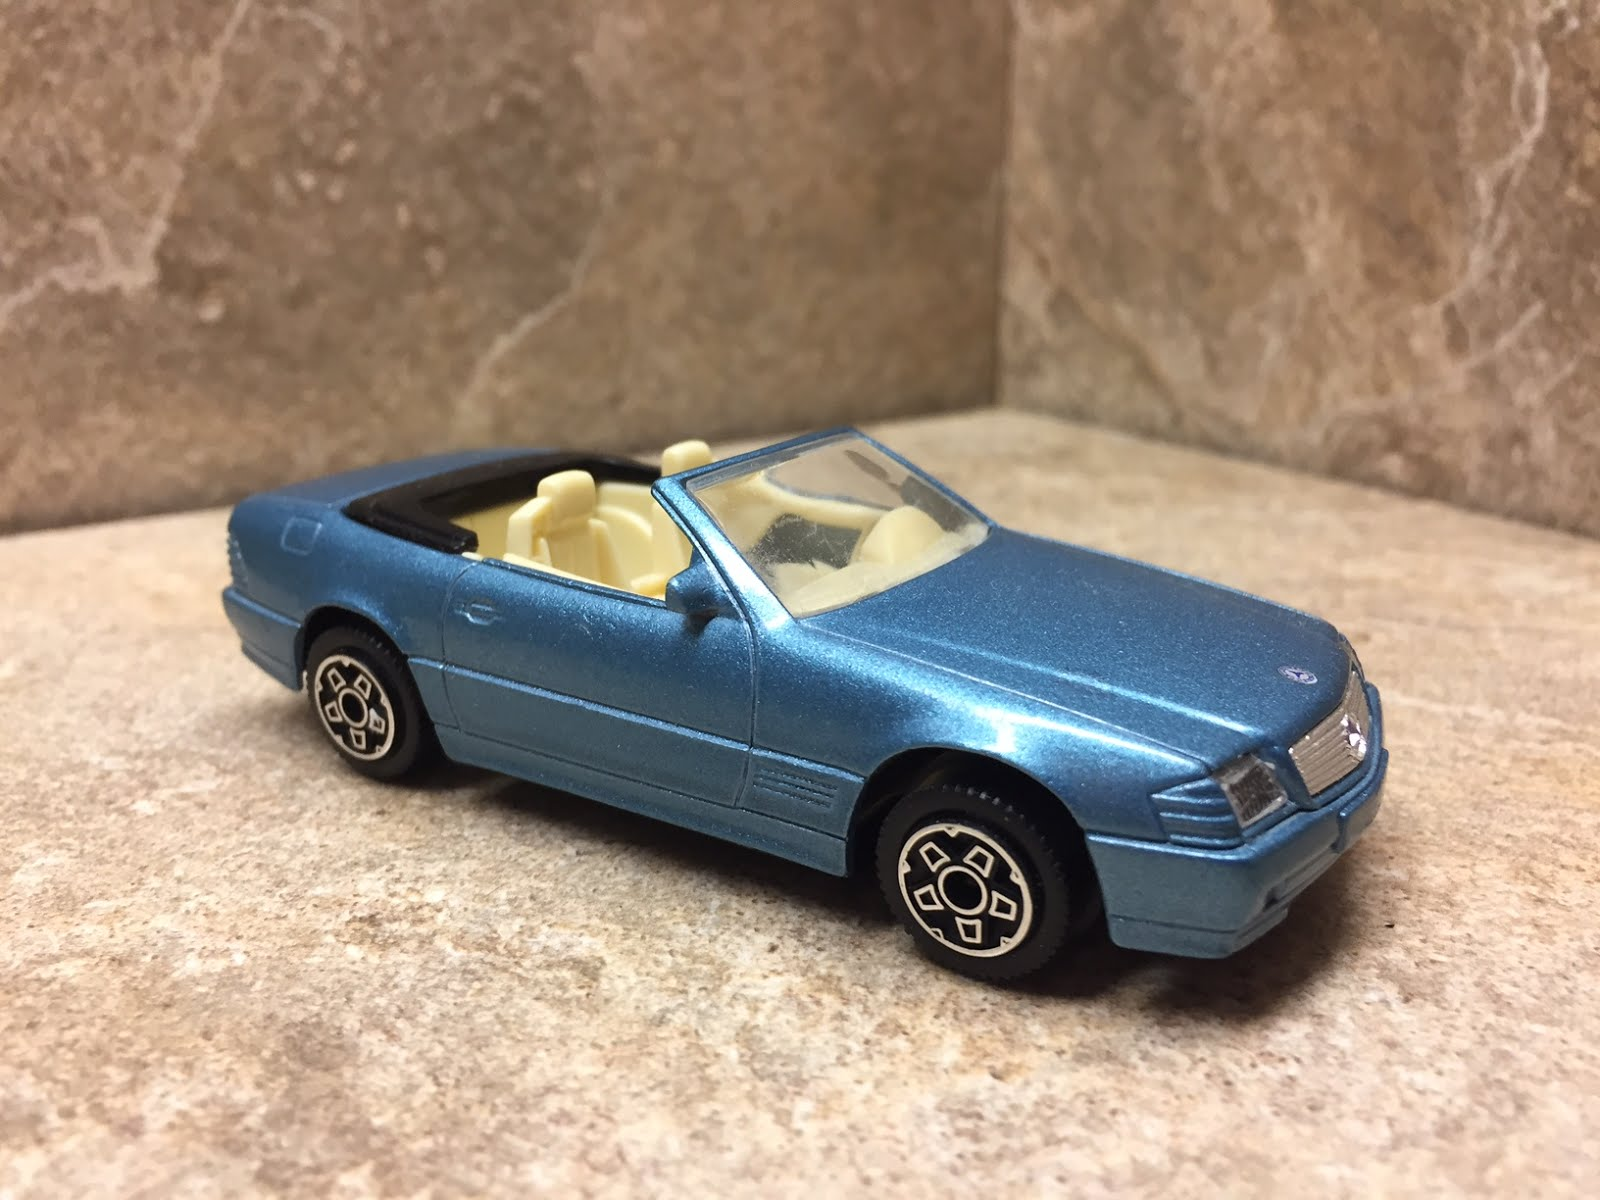 1:43rd scale Mercedes Benz ~